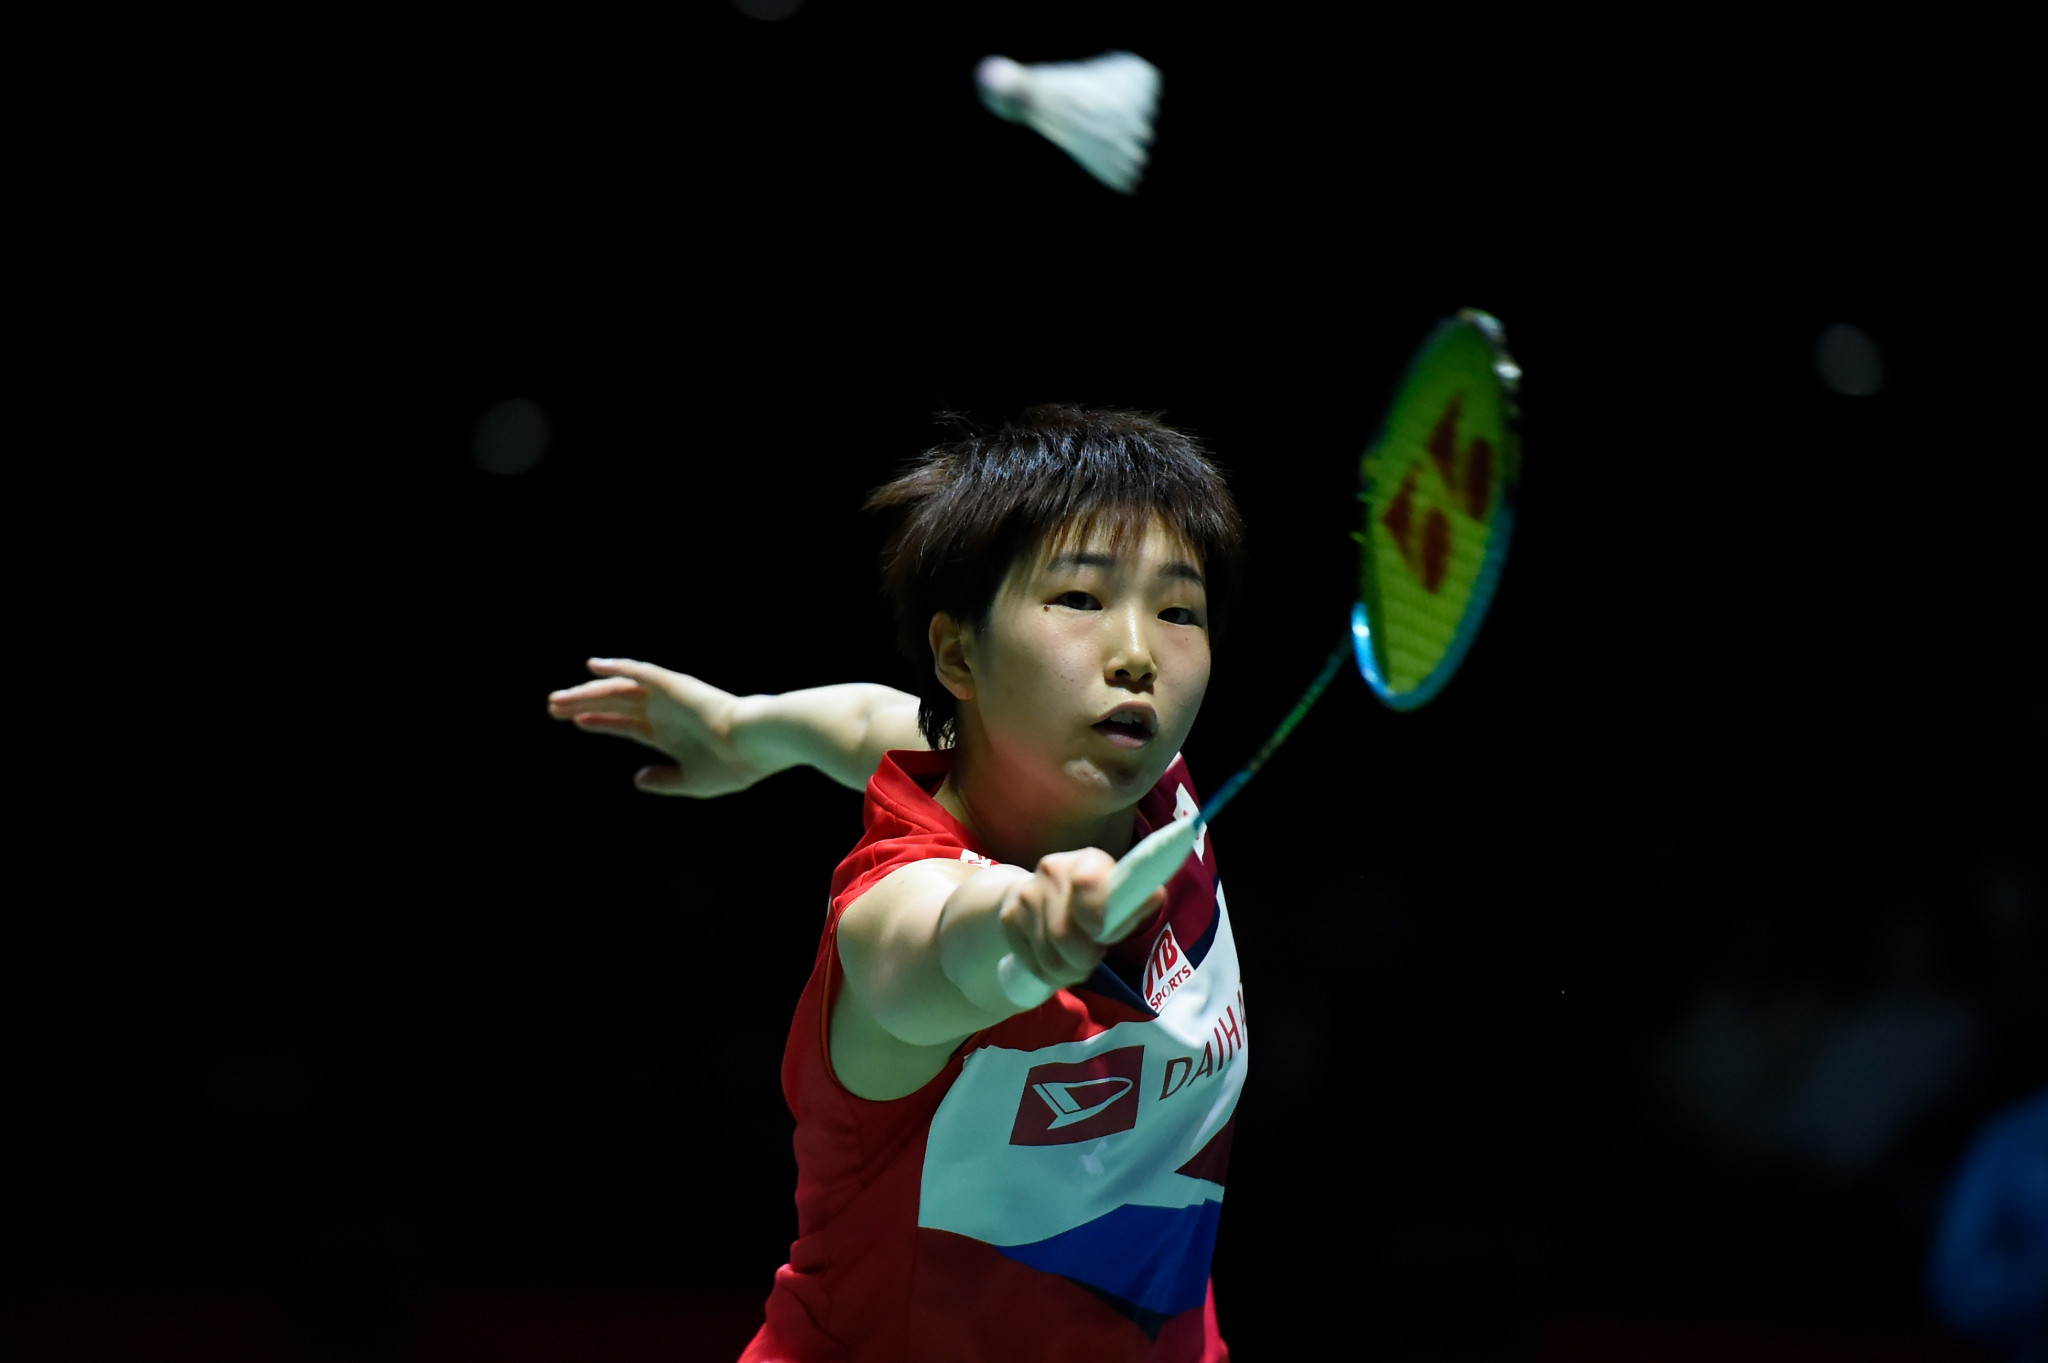 Yamaguchi breezes through as BWF Japan Open and Tokyo 2020 test event continues